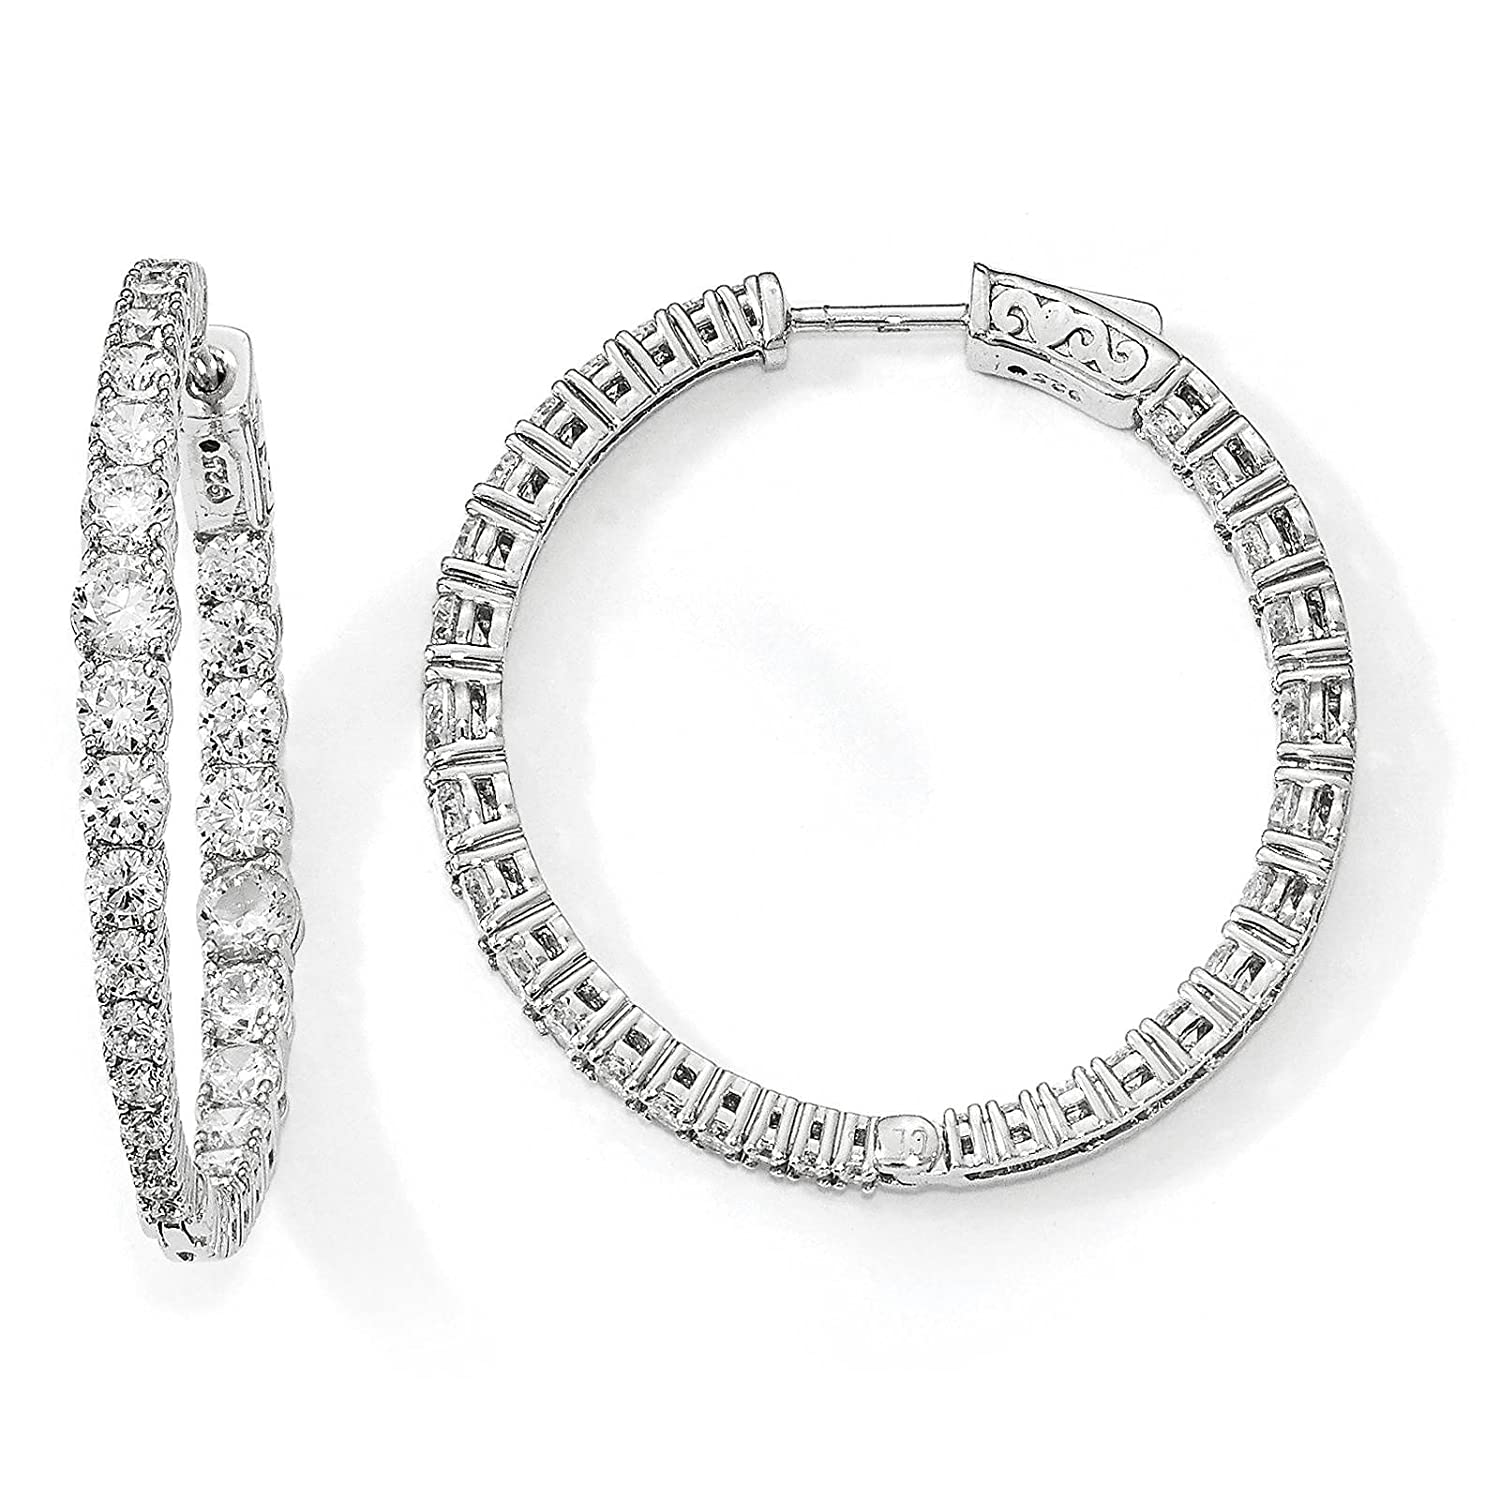 925 Sterling Silver Rhodium-plated Graduated CZ In /& Out Round Hoop Earrings by Sterling Shimmer